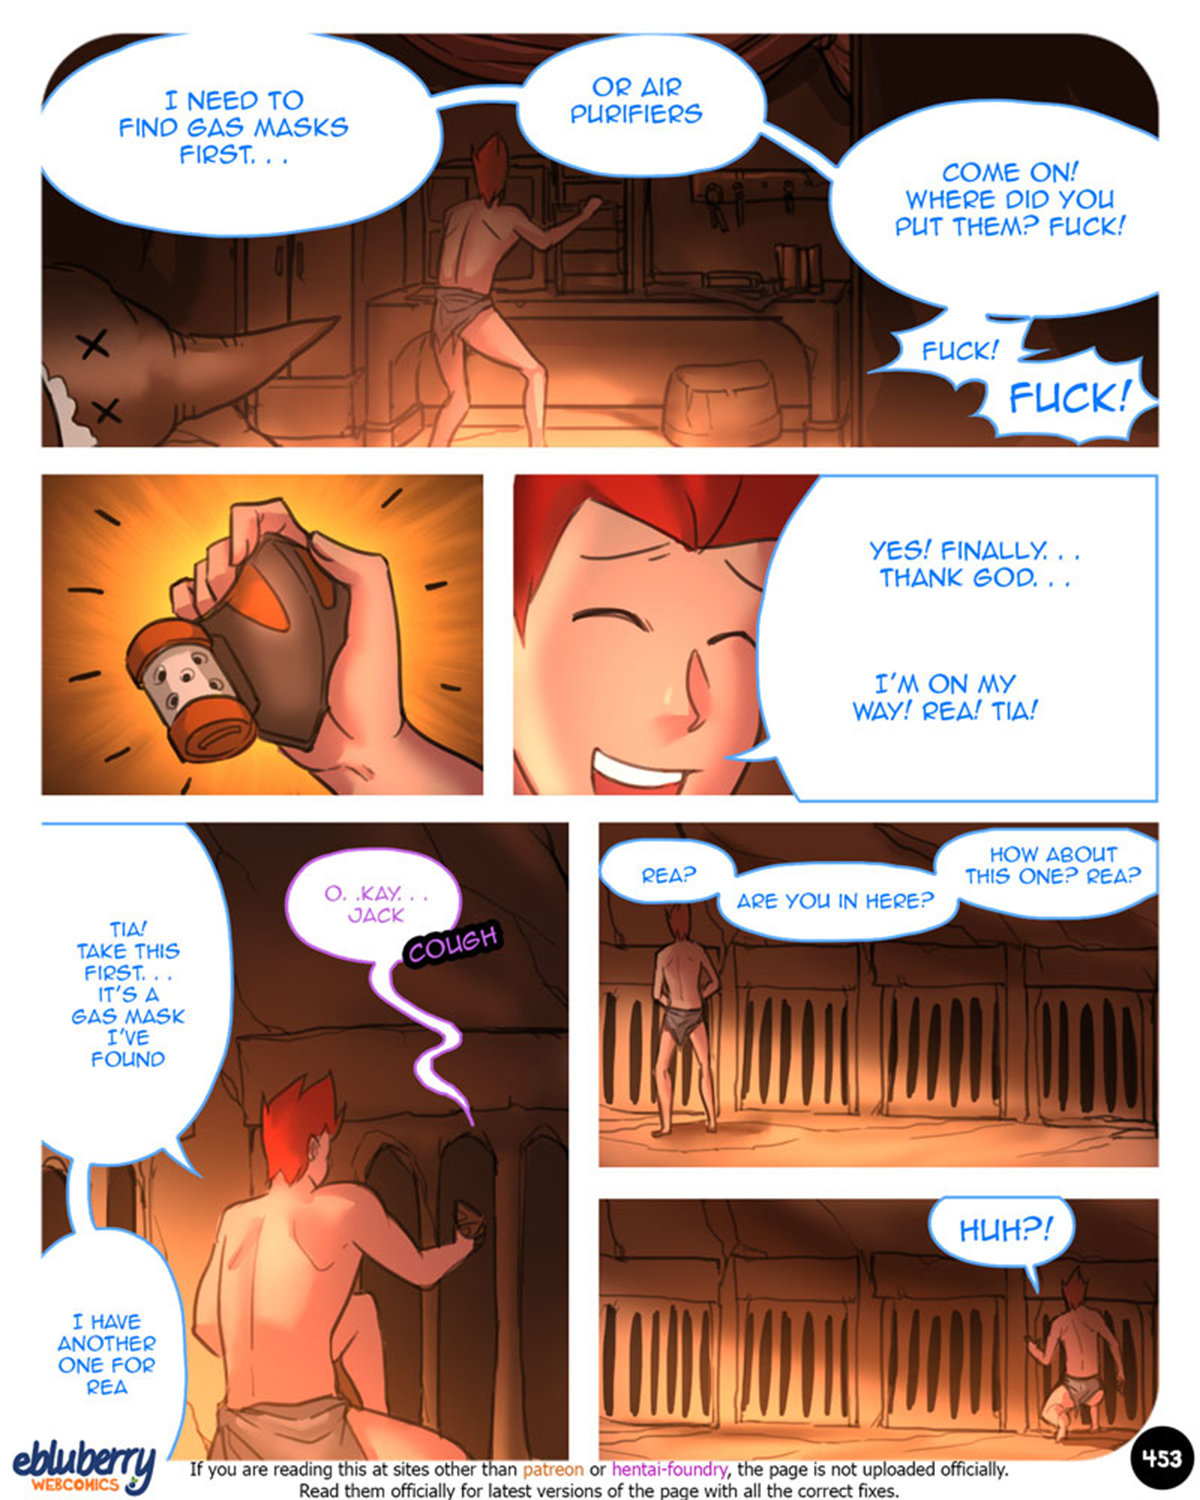 014 2 - S.EXpedition - [Ebluberry]. Part 22.